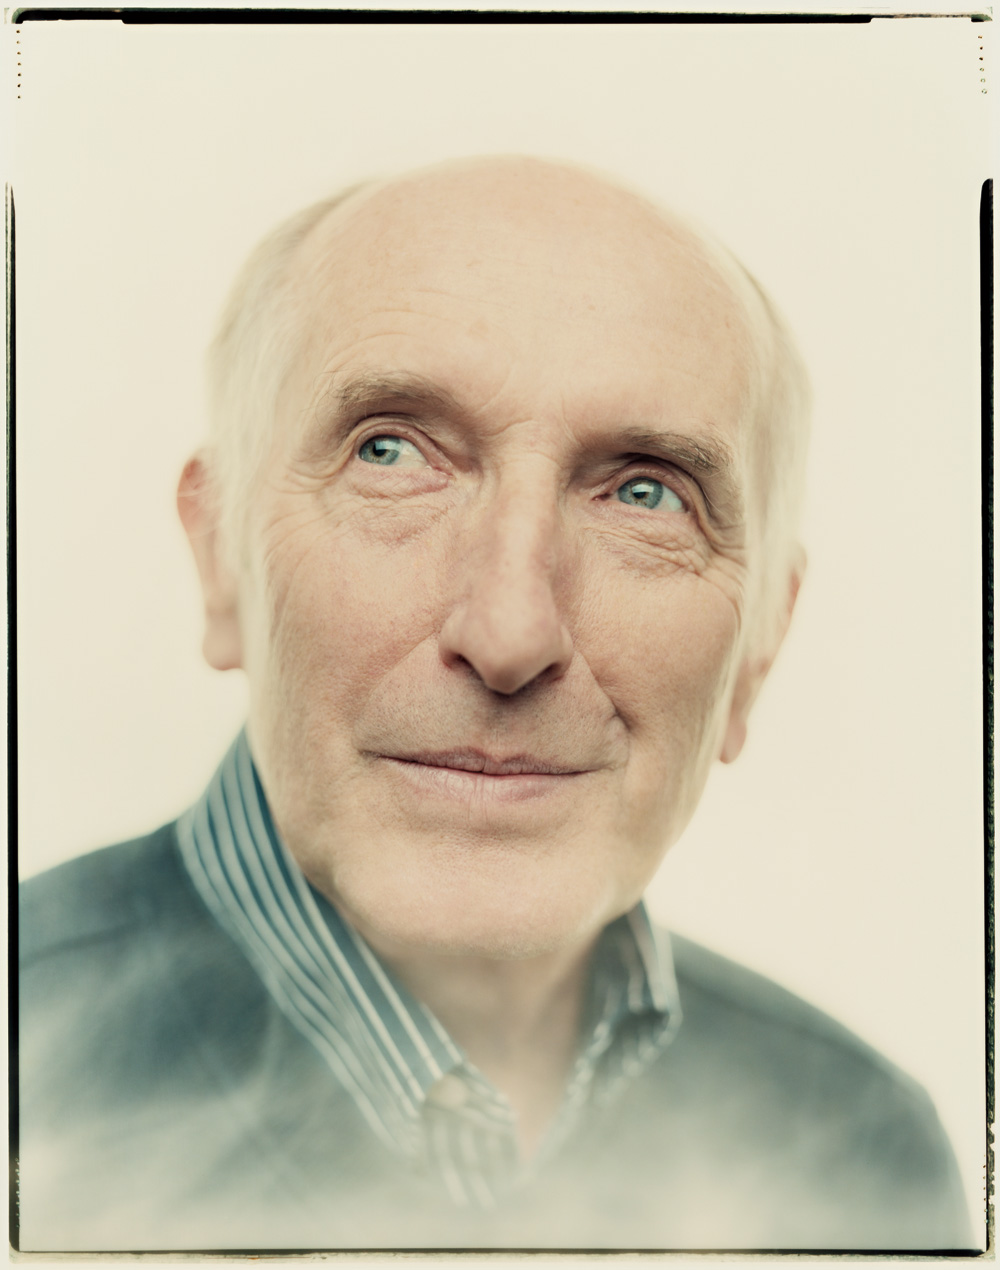 Vaclav Smil, as photographed by Andreas Laszlo Konrath, via Wired.